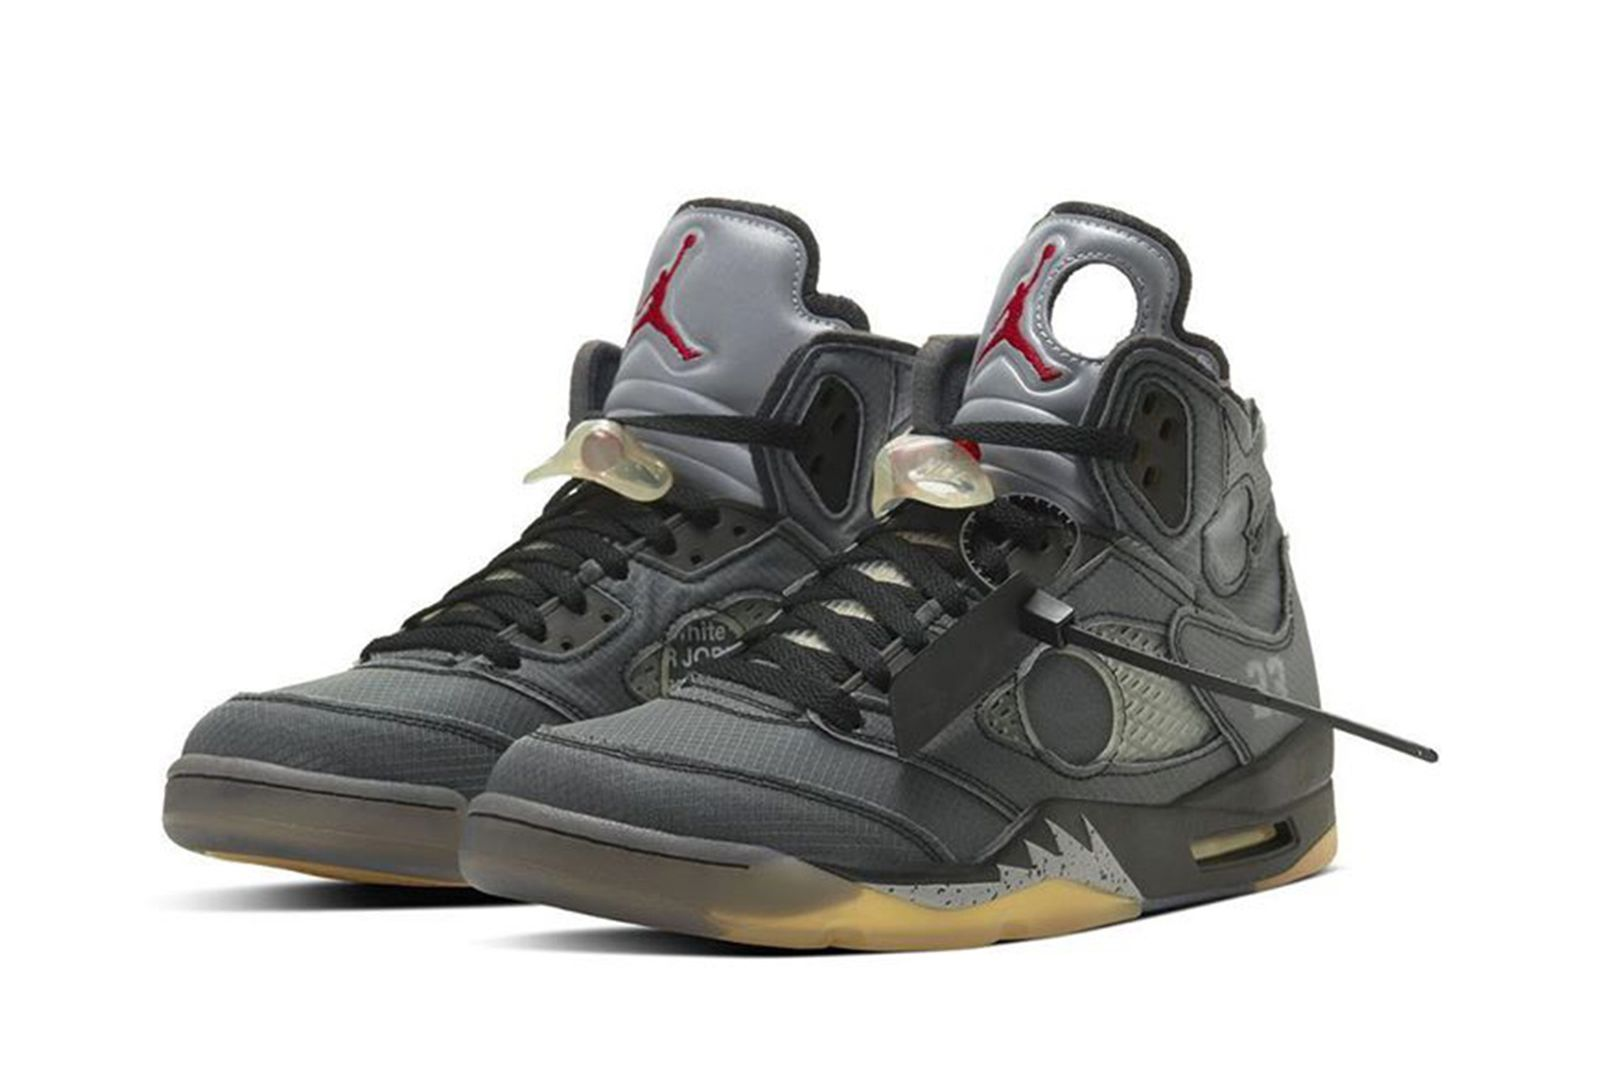 off-white-nike-air-jordan-5-release-date-price-official-product-04